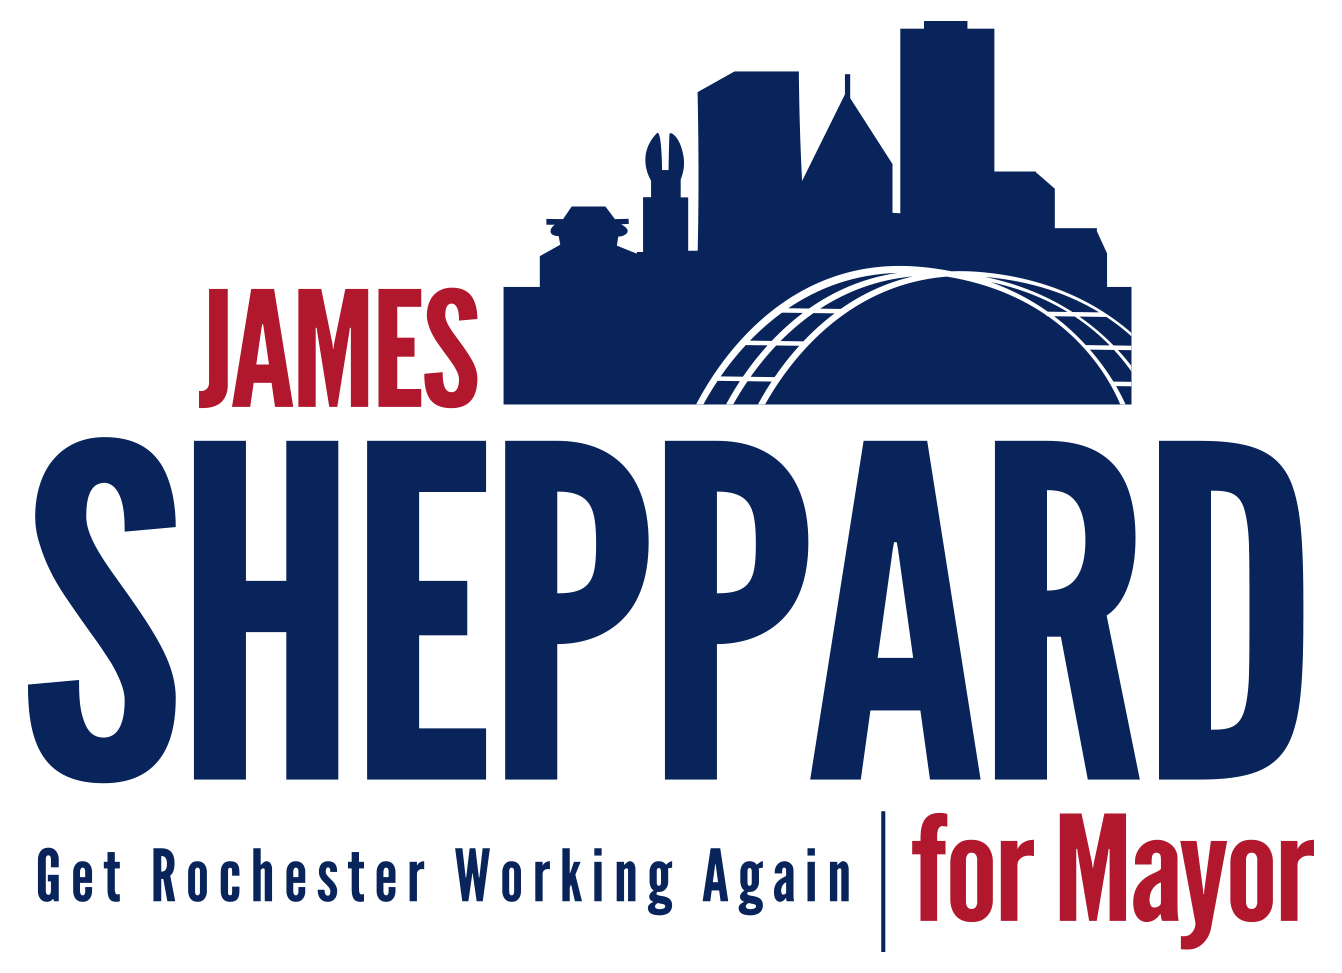 James Sheppard for Rochester